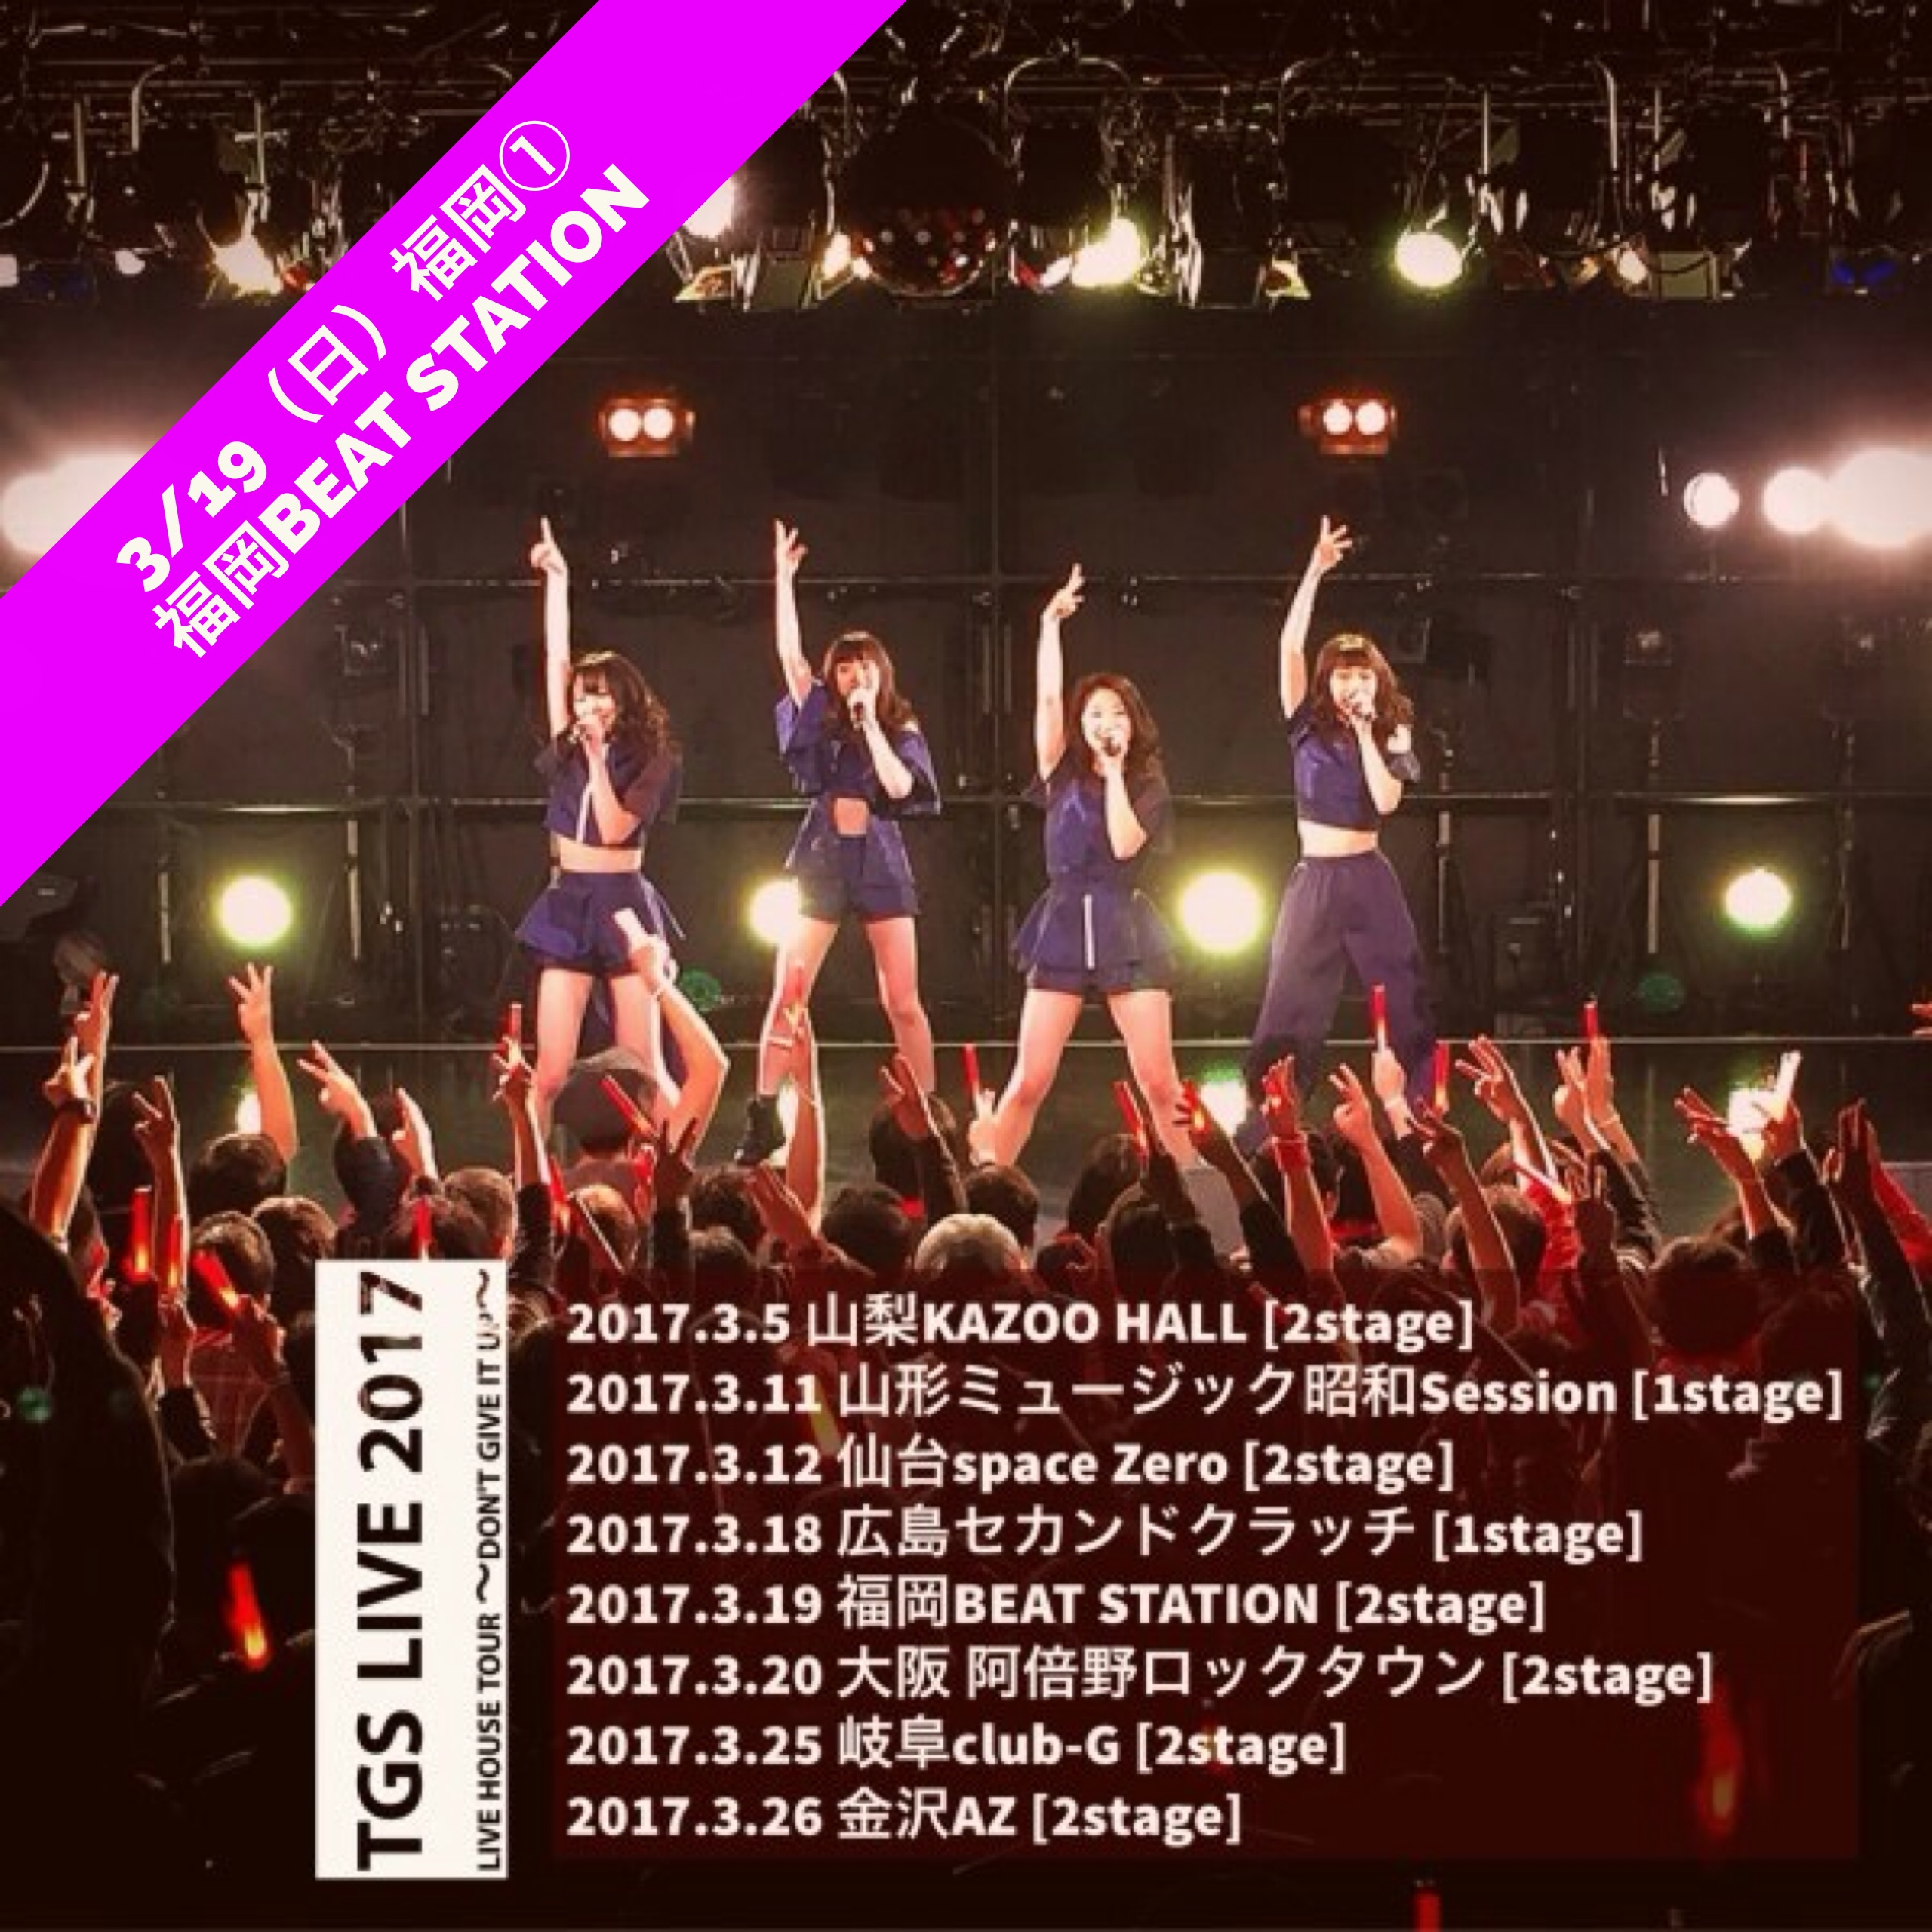 TGS LIVE 2017 LIVE HOUSE TOUR 〜Don't give it up〜(3/19福岡①14:30公演)